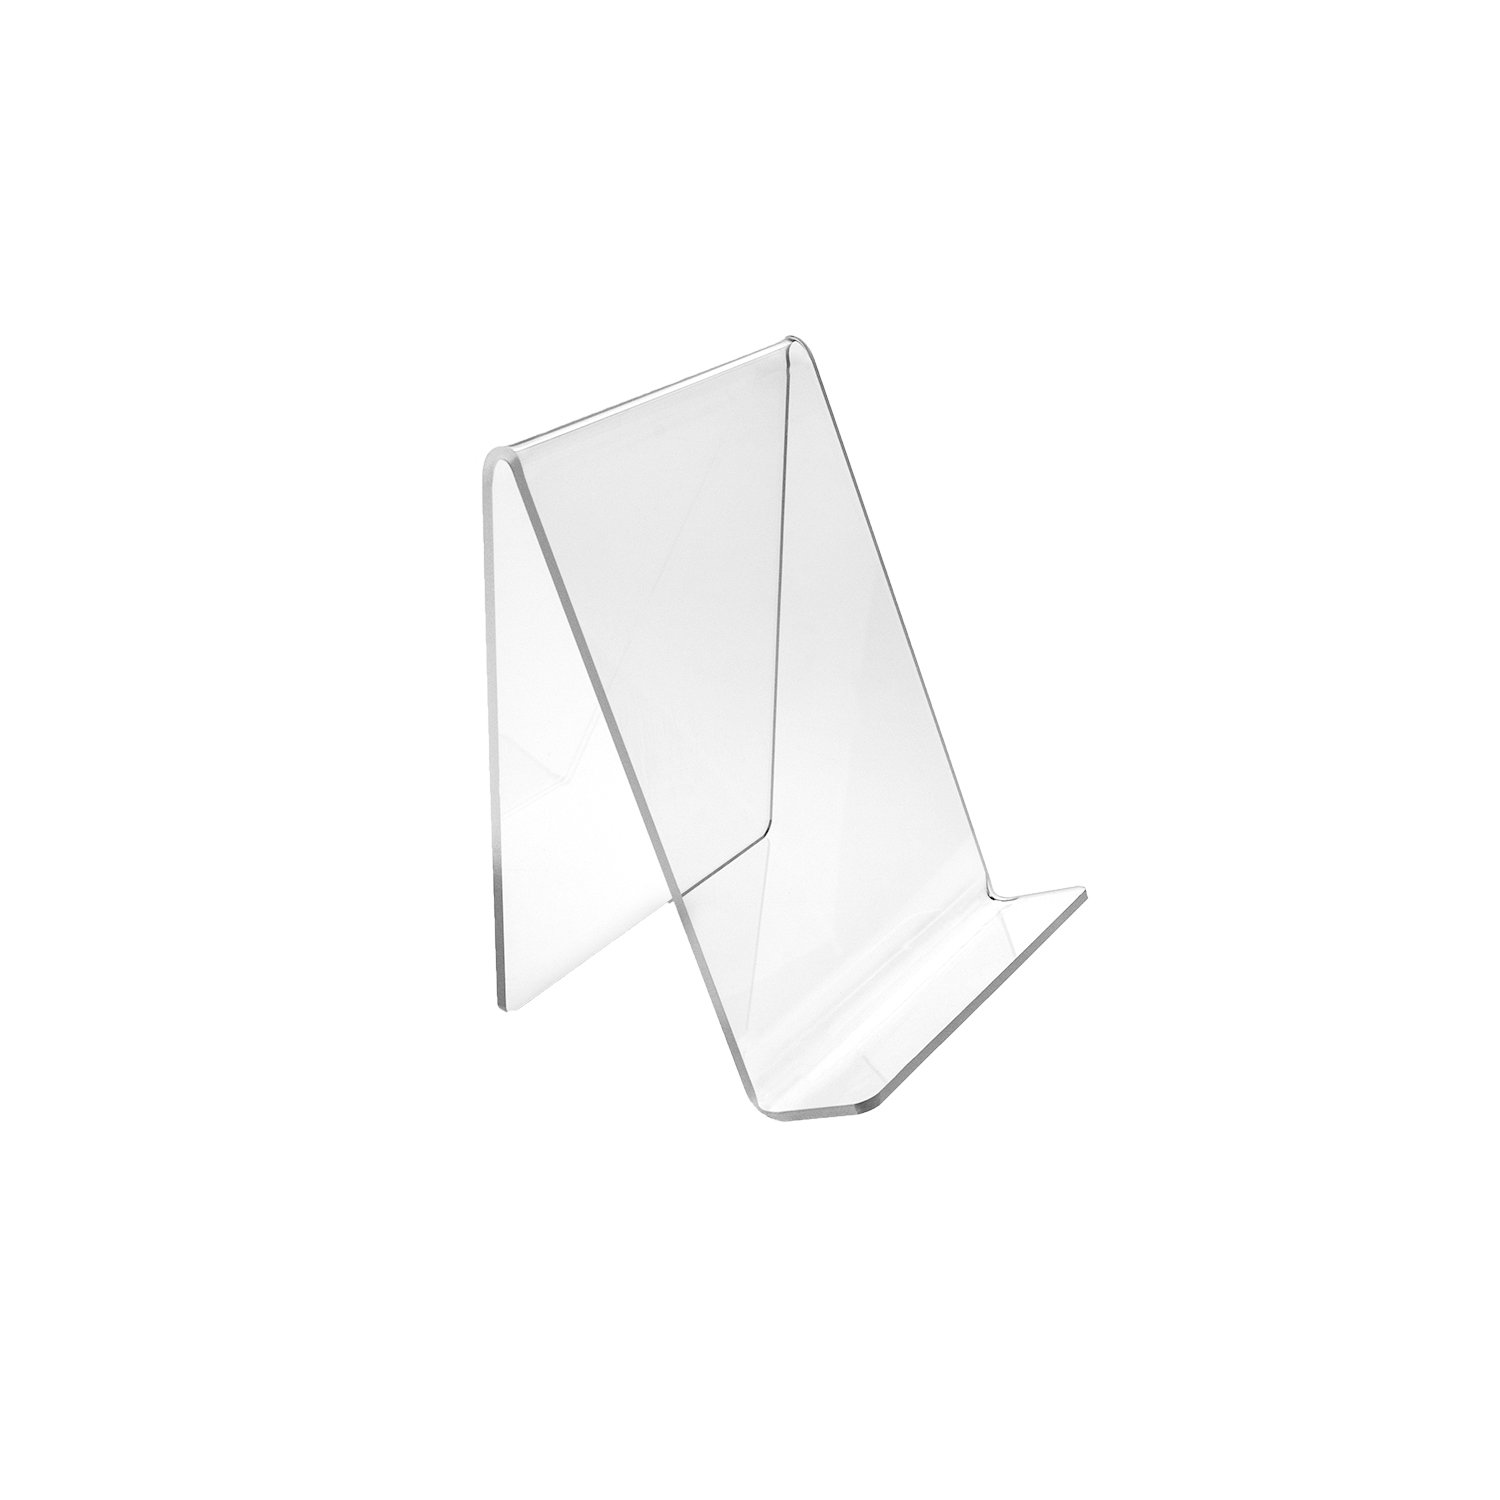 SOURCEONE.ORG Deluxe 4.5 x 5 Inch Medium Clear Acrylic Book Easels Premium Thick